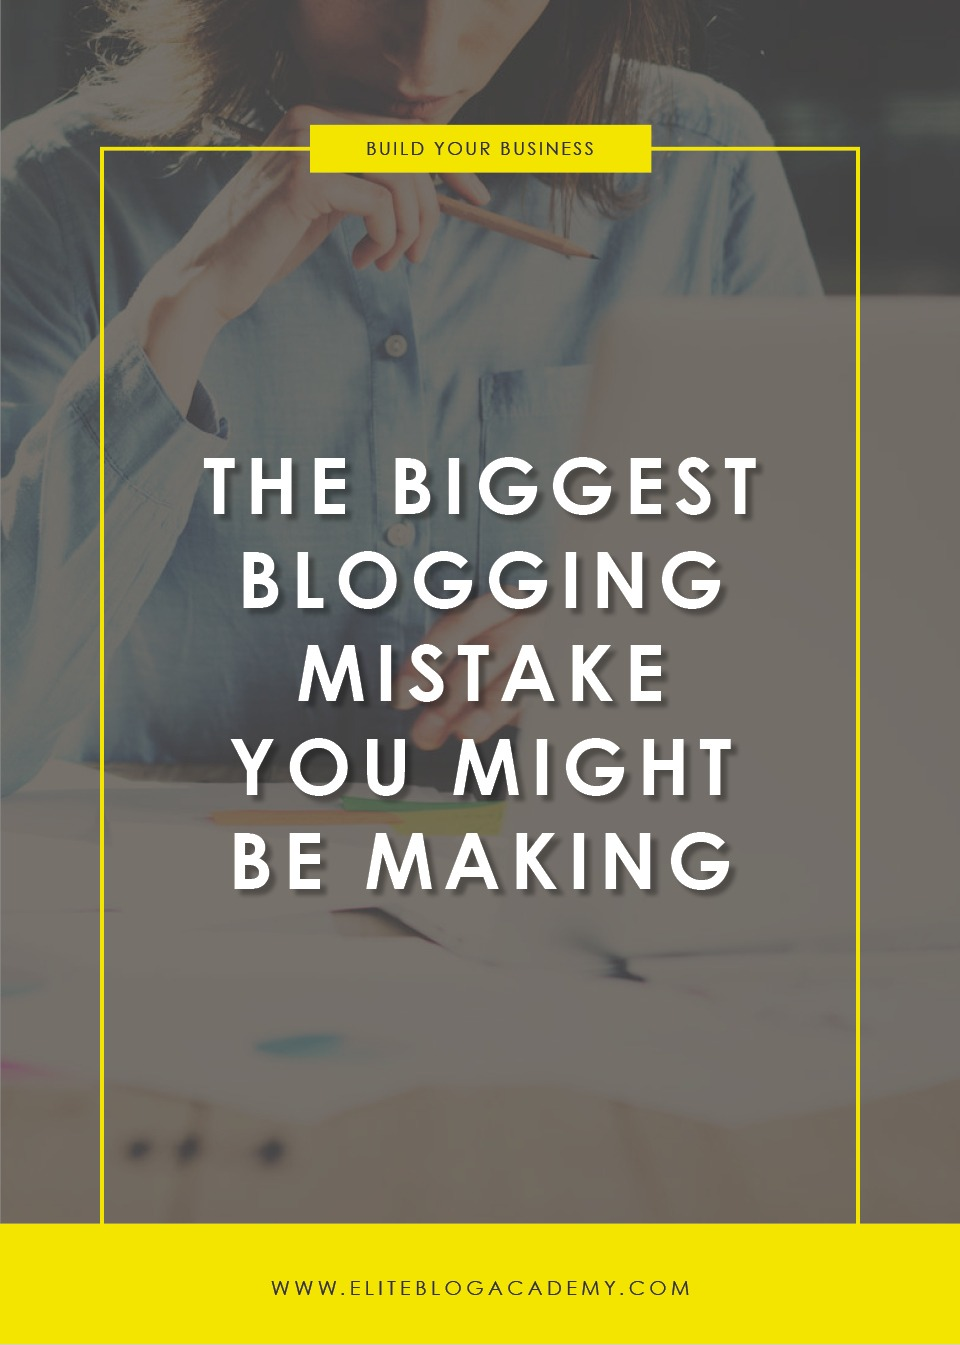 Blogging Mistakes | Elite Blog Academy | EBA | Ruth Soukup | Blogging Tips | Bloggers | Writing 101 | How to Blog